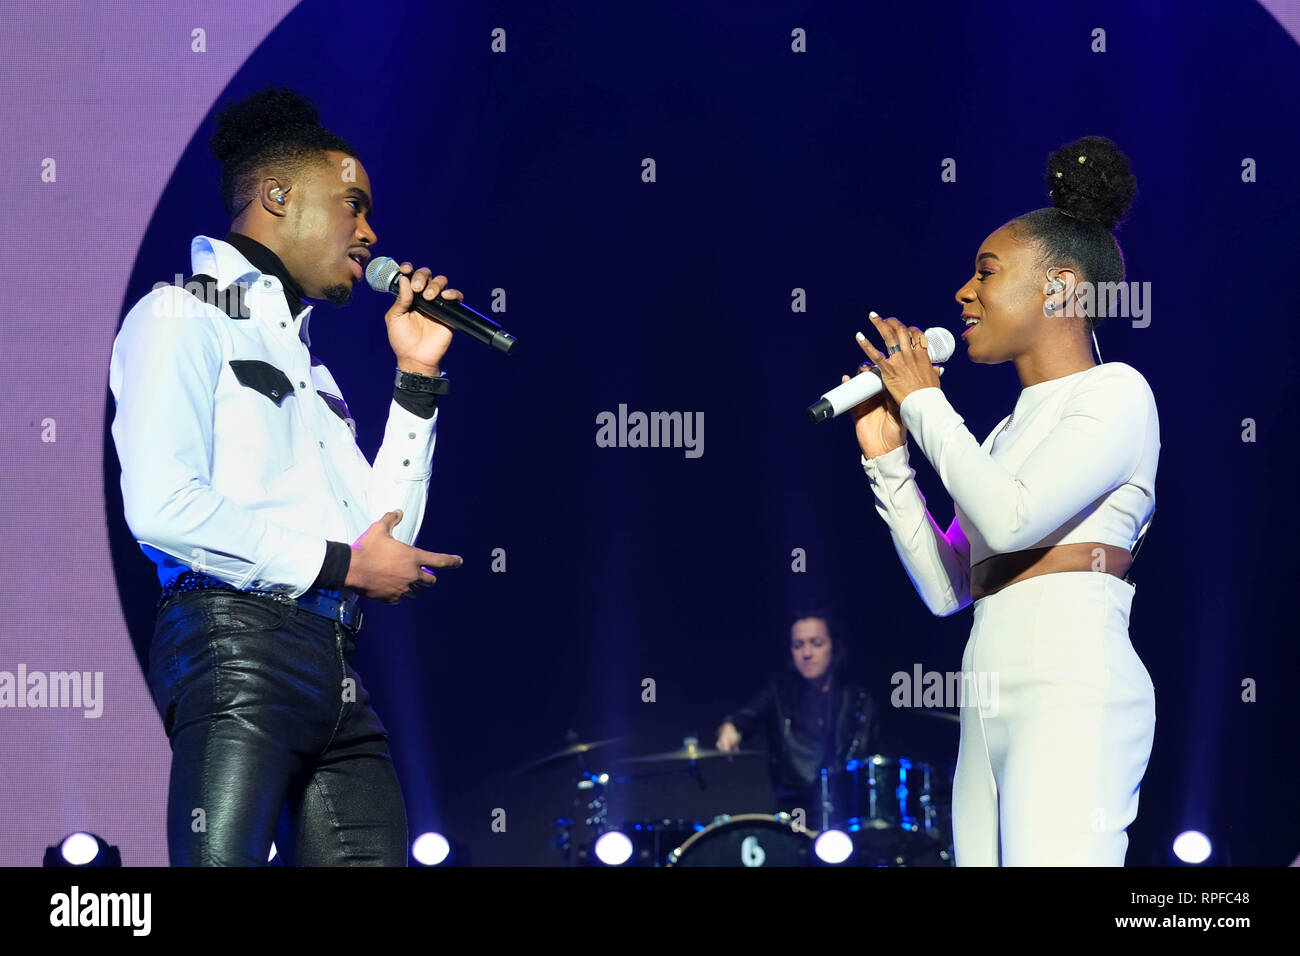 Bournemouth, Dorset, UK  20th February 2019  X Factor UK Tour 2019